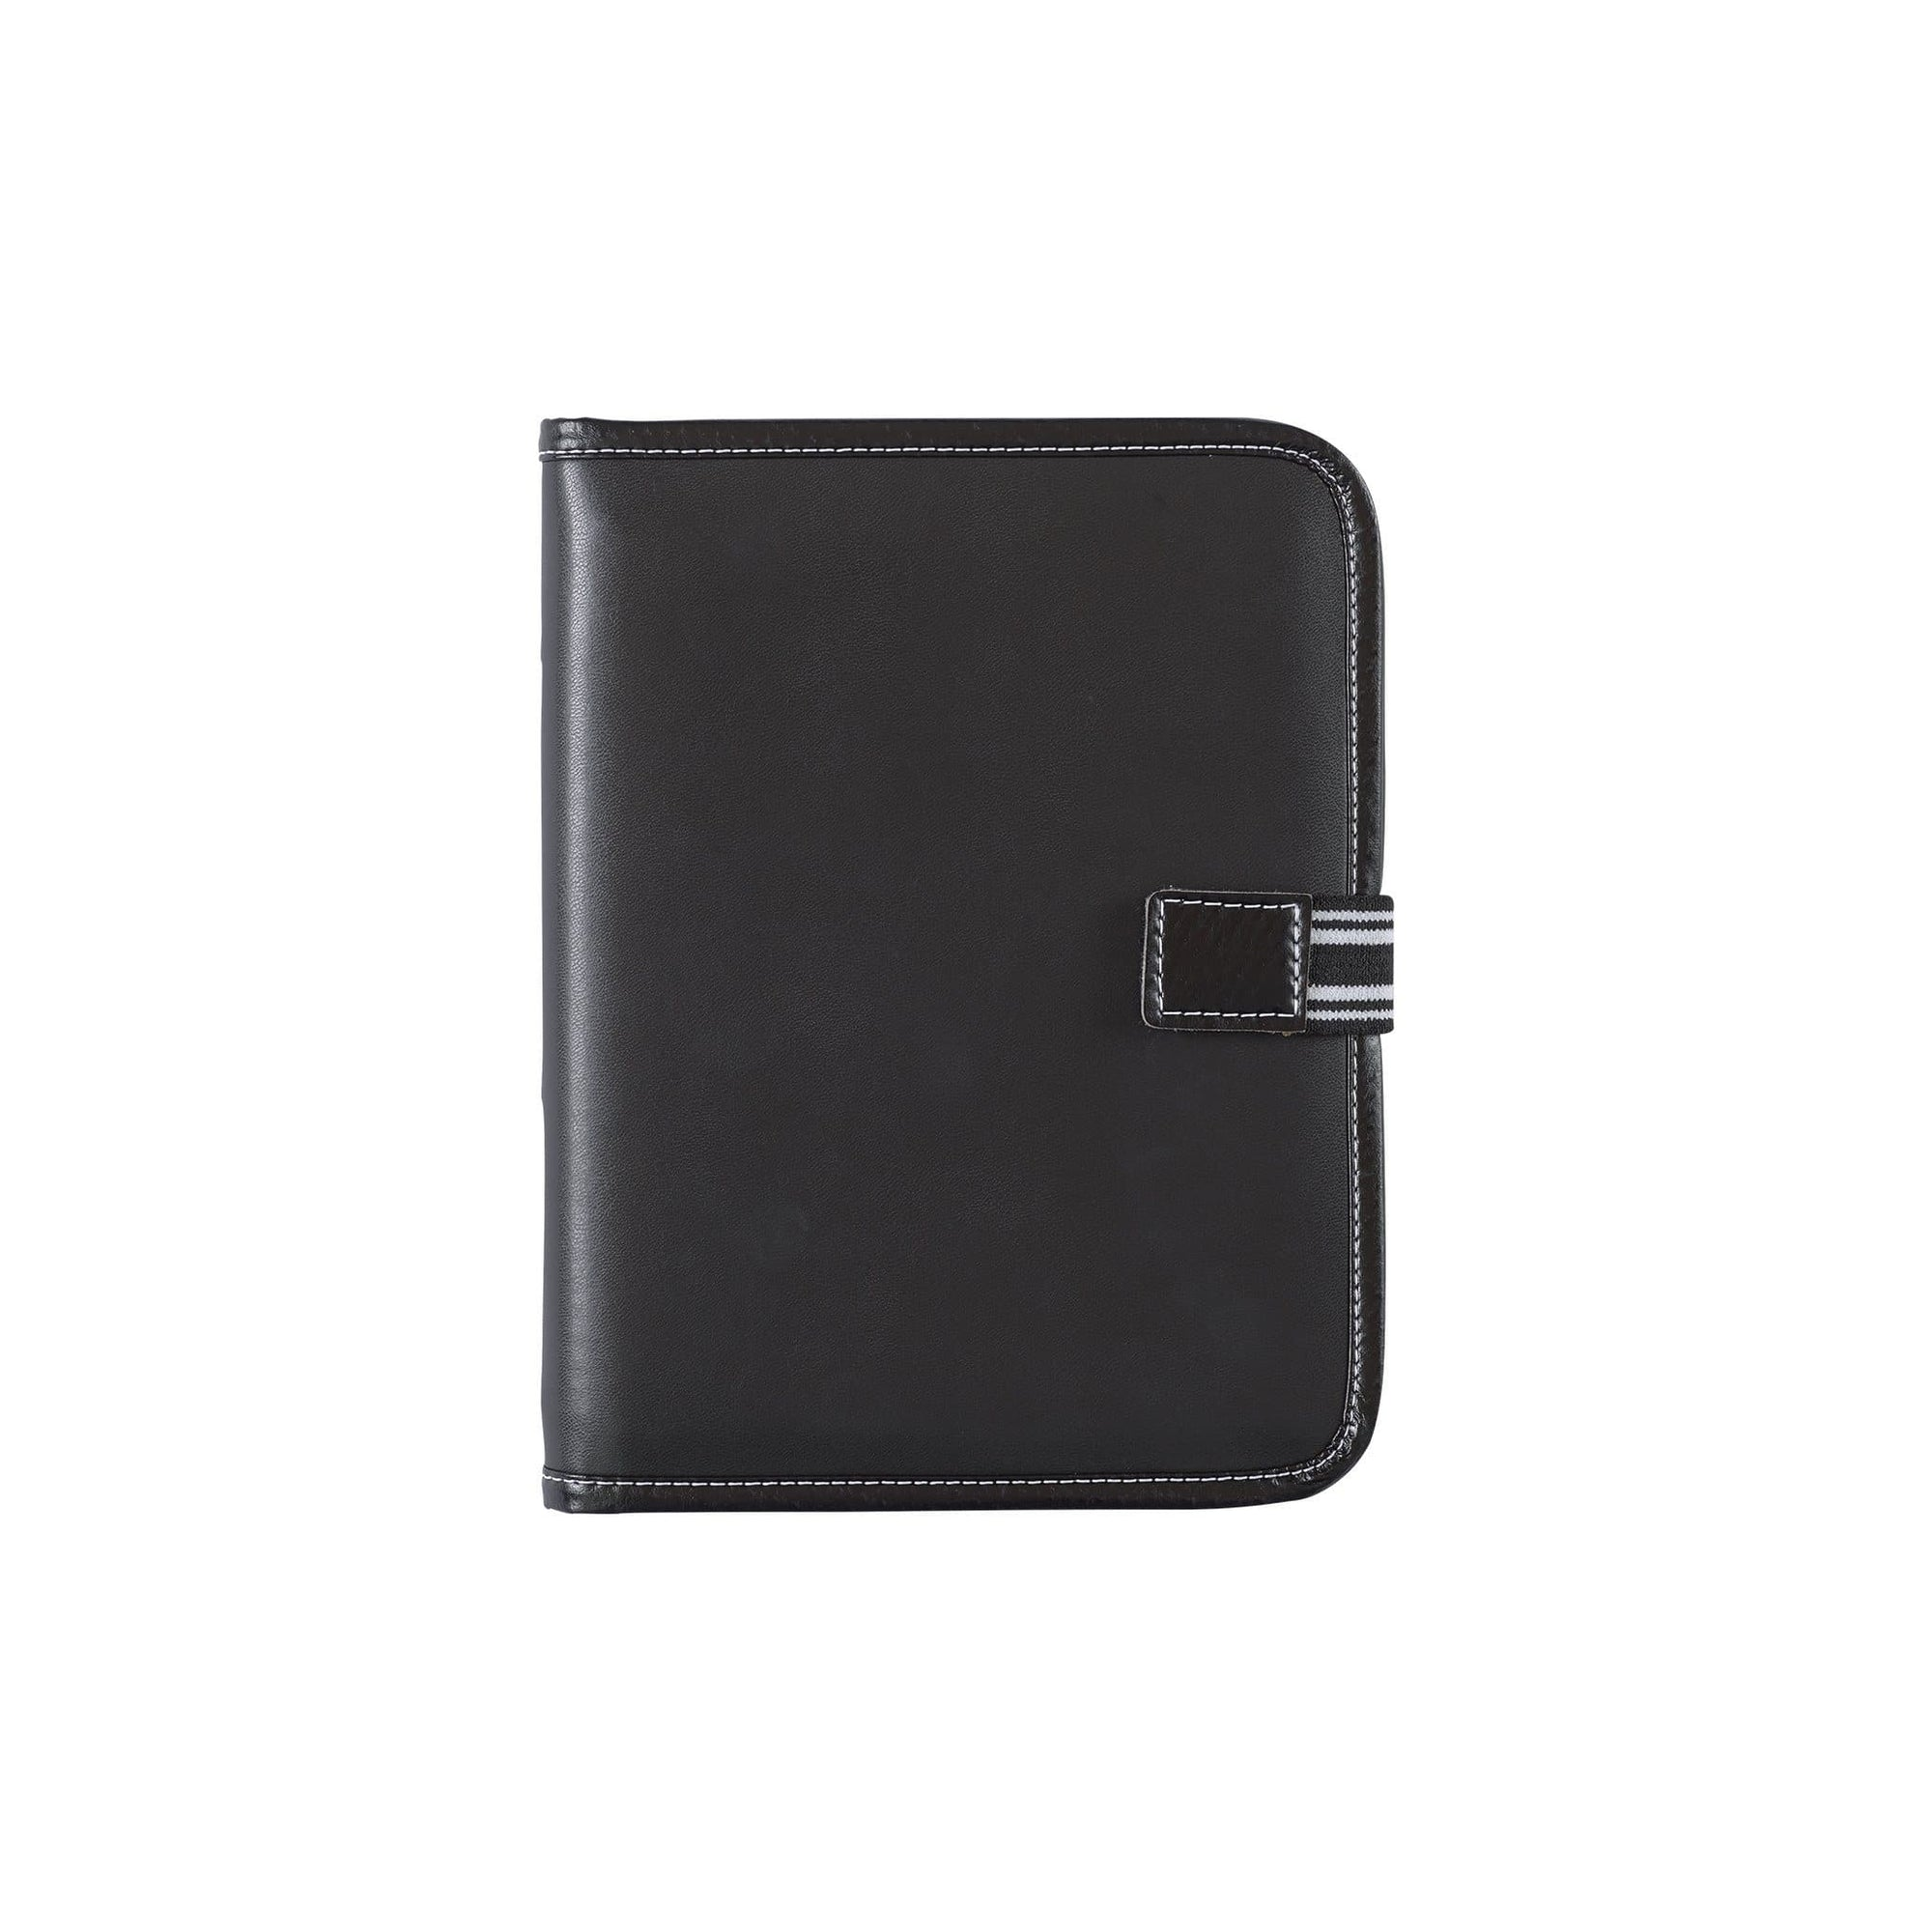 The EquiFit Notebook